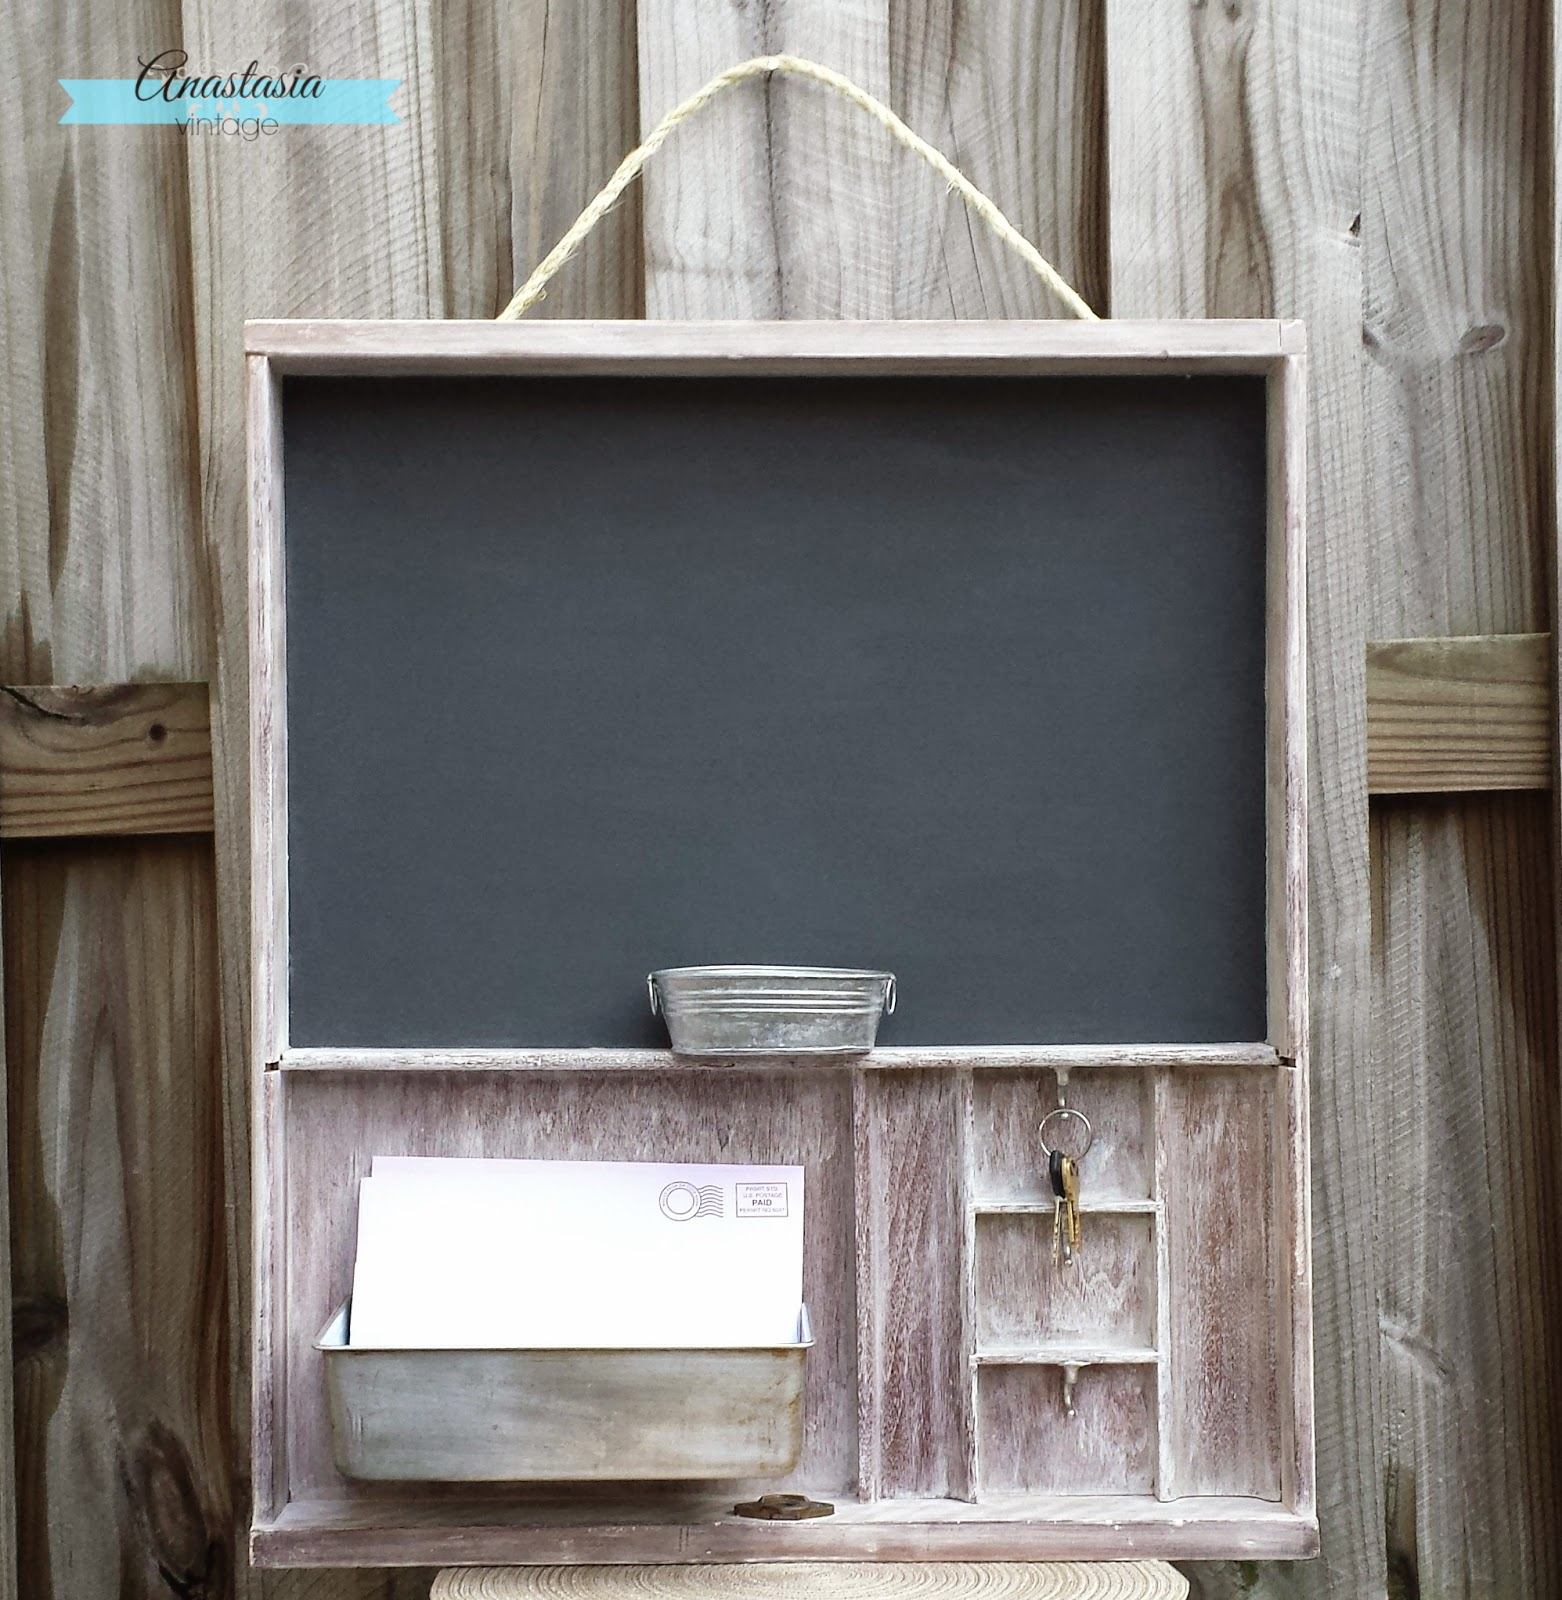 https://www.etsy.com/listing/206343068/rustic-entryway-organizer-with-key-rack?ref=shop_home_active_1